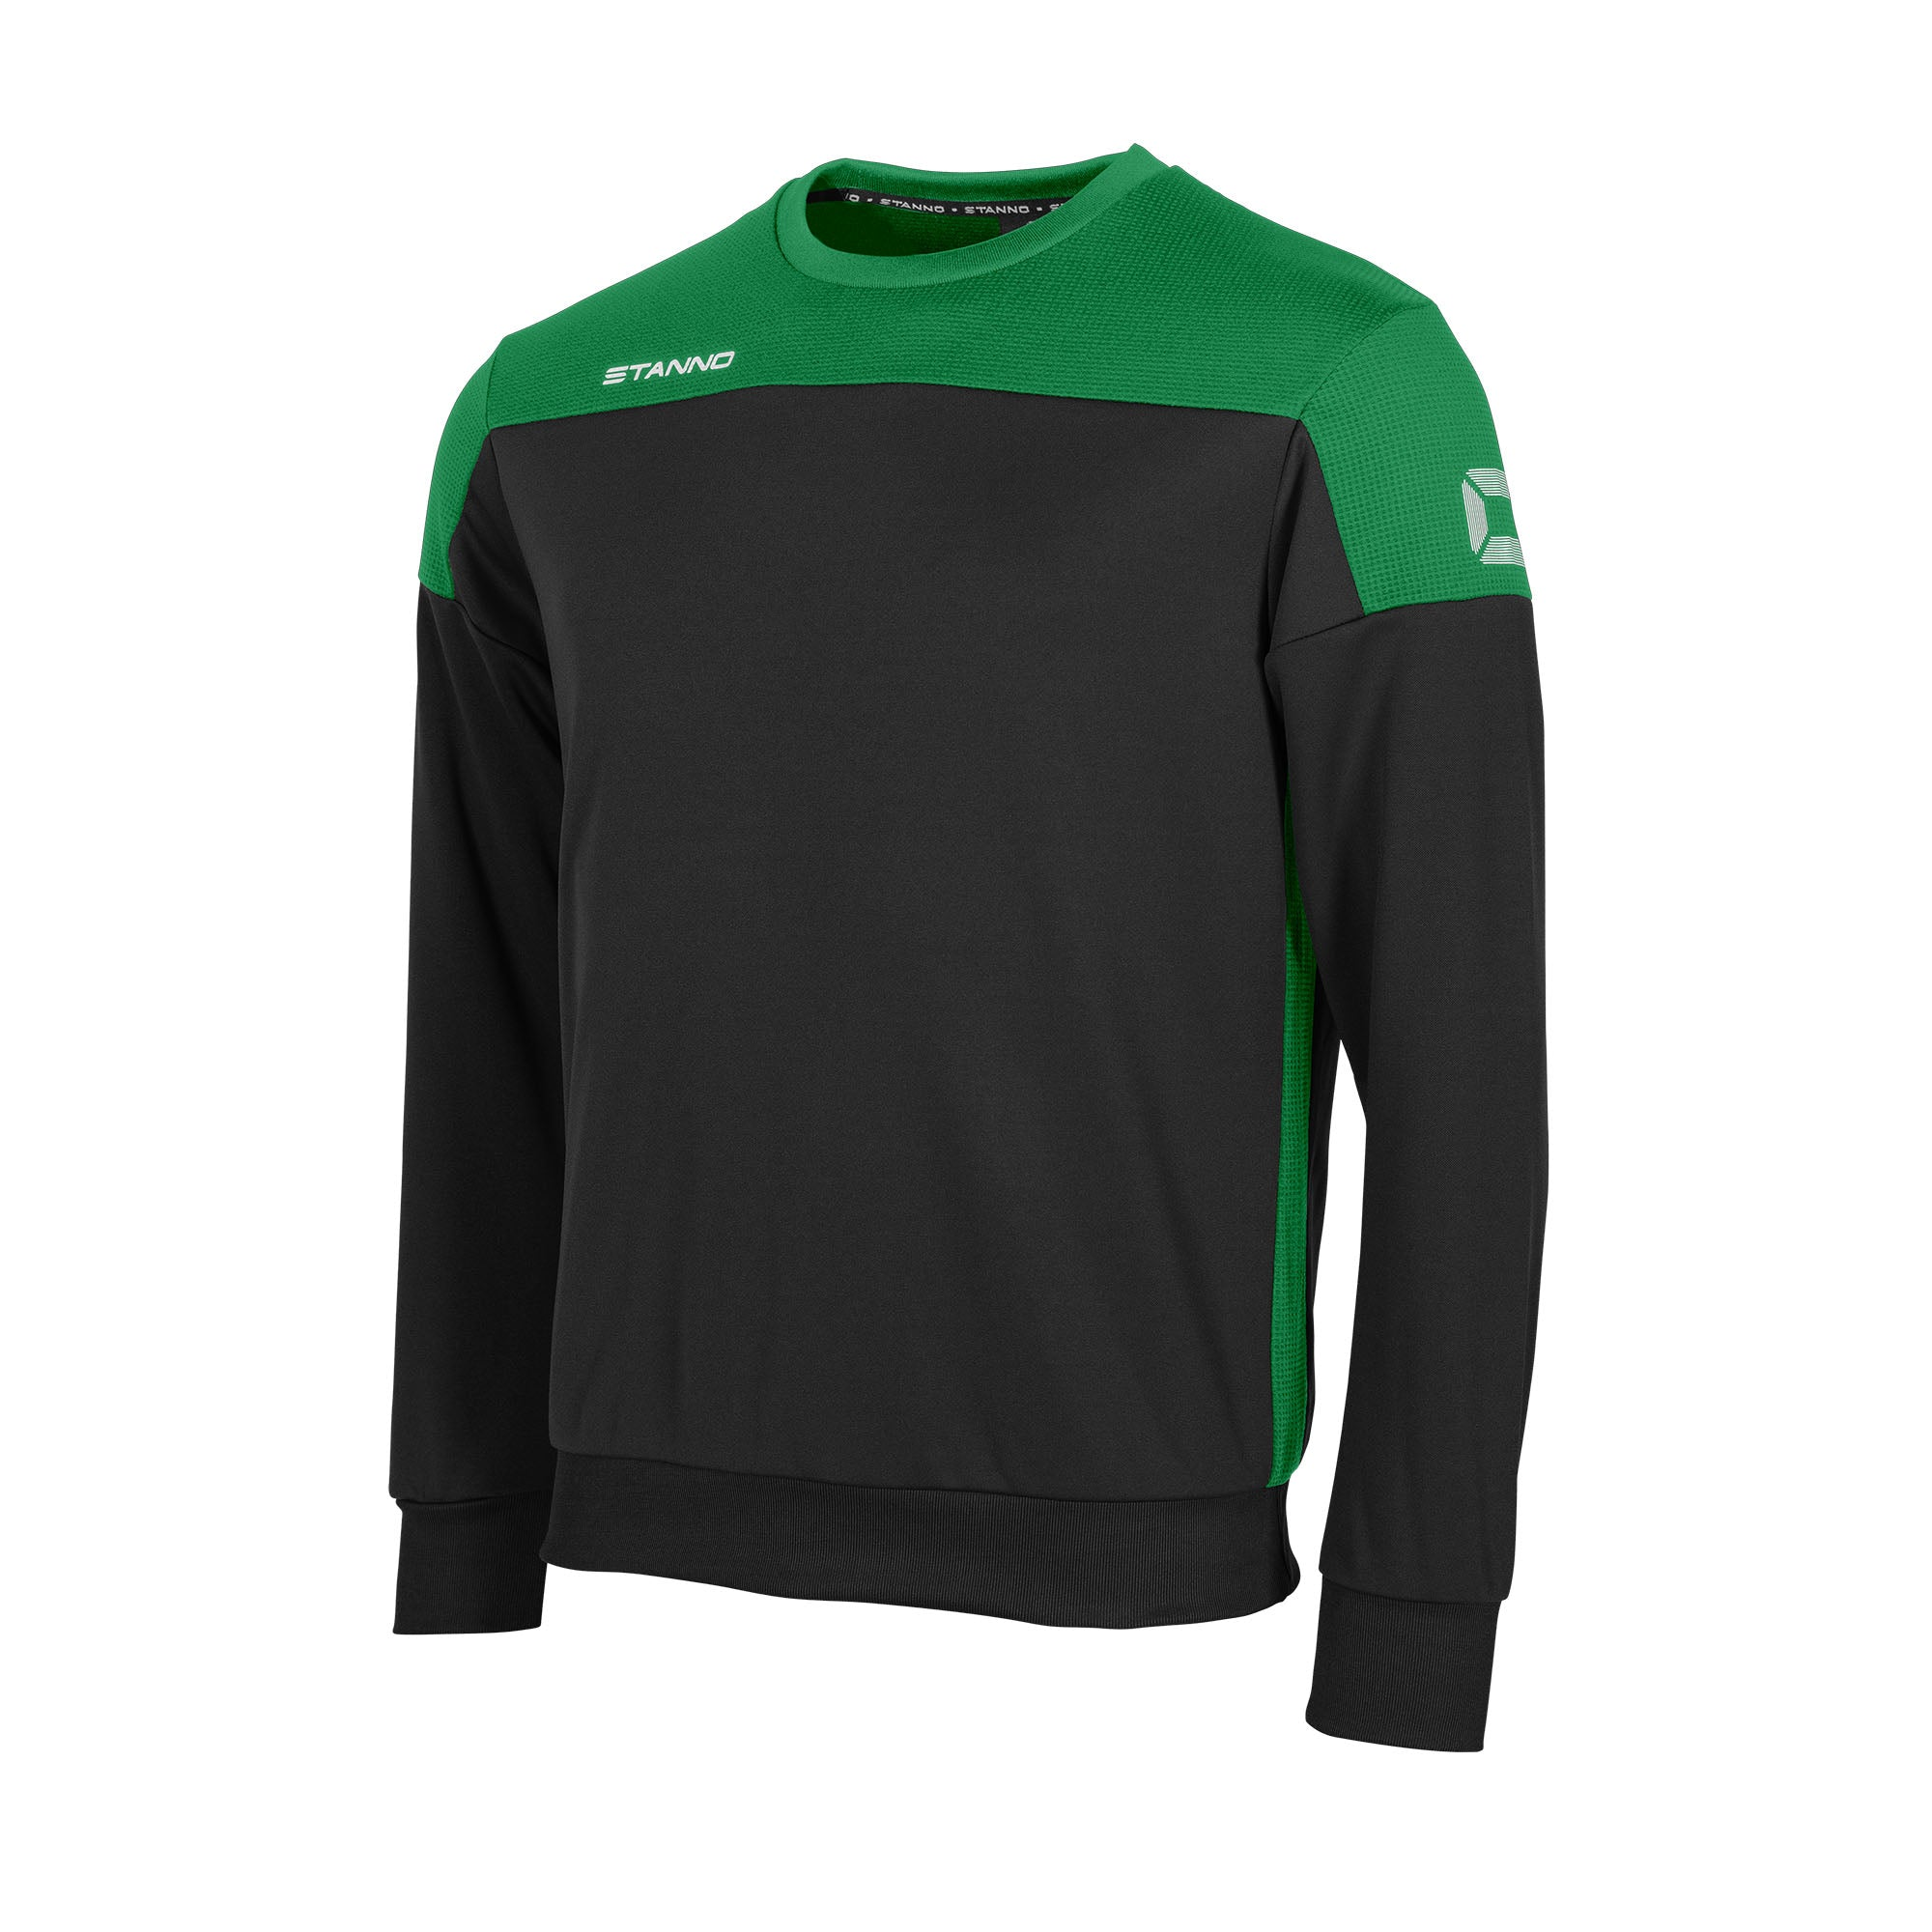 Stanno Pride round neck sweatshirt in black, with mesh contrast green shoulder and side panel